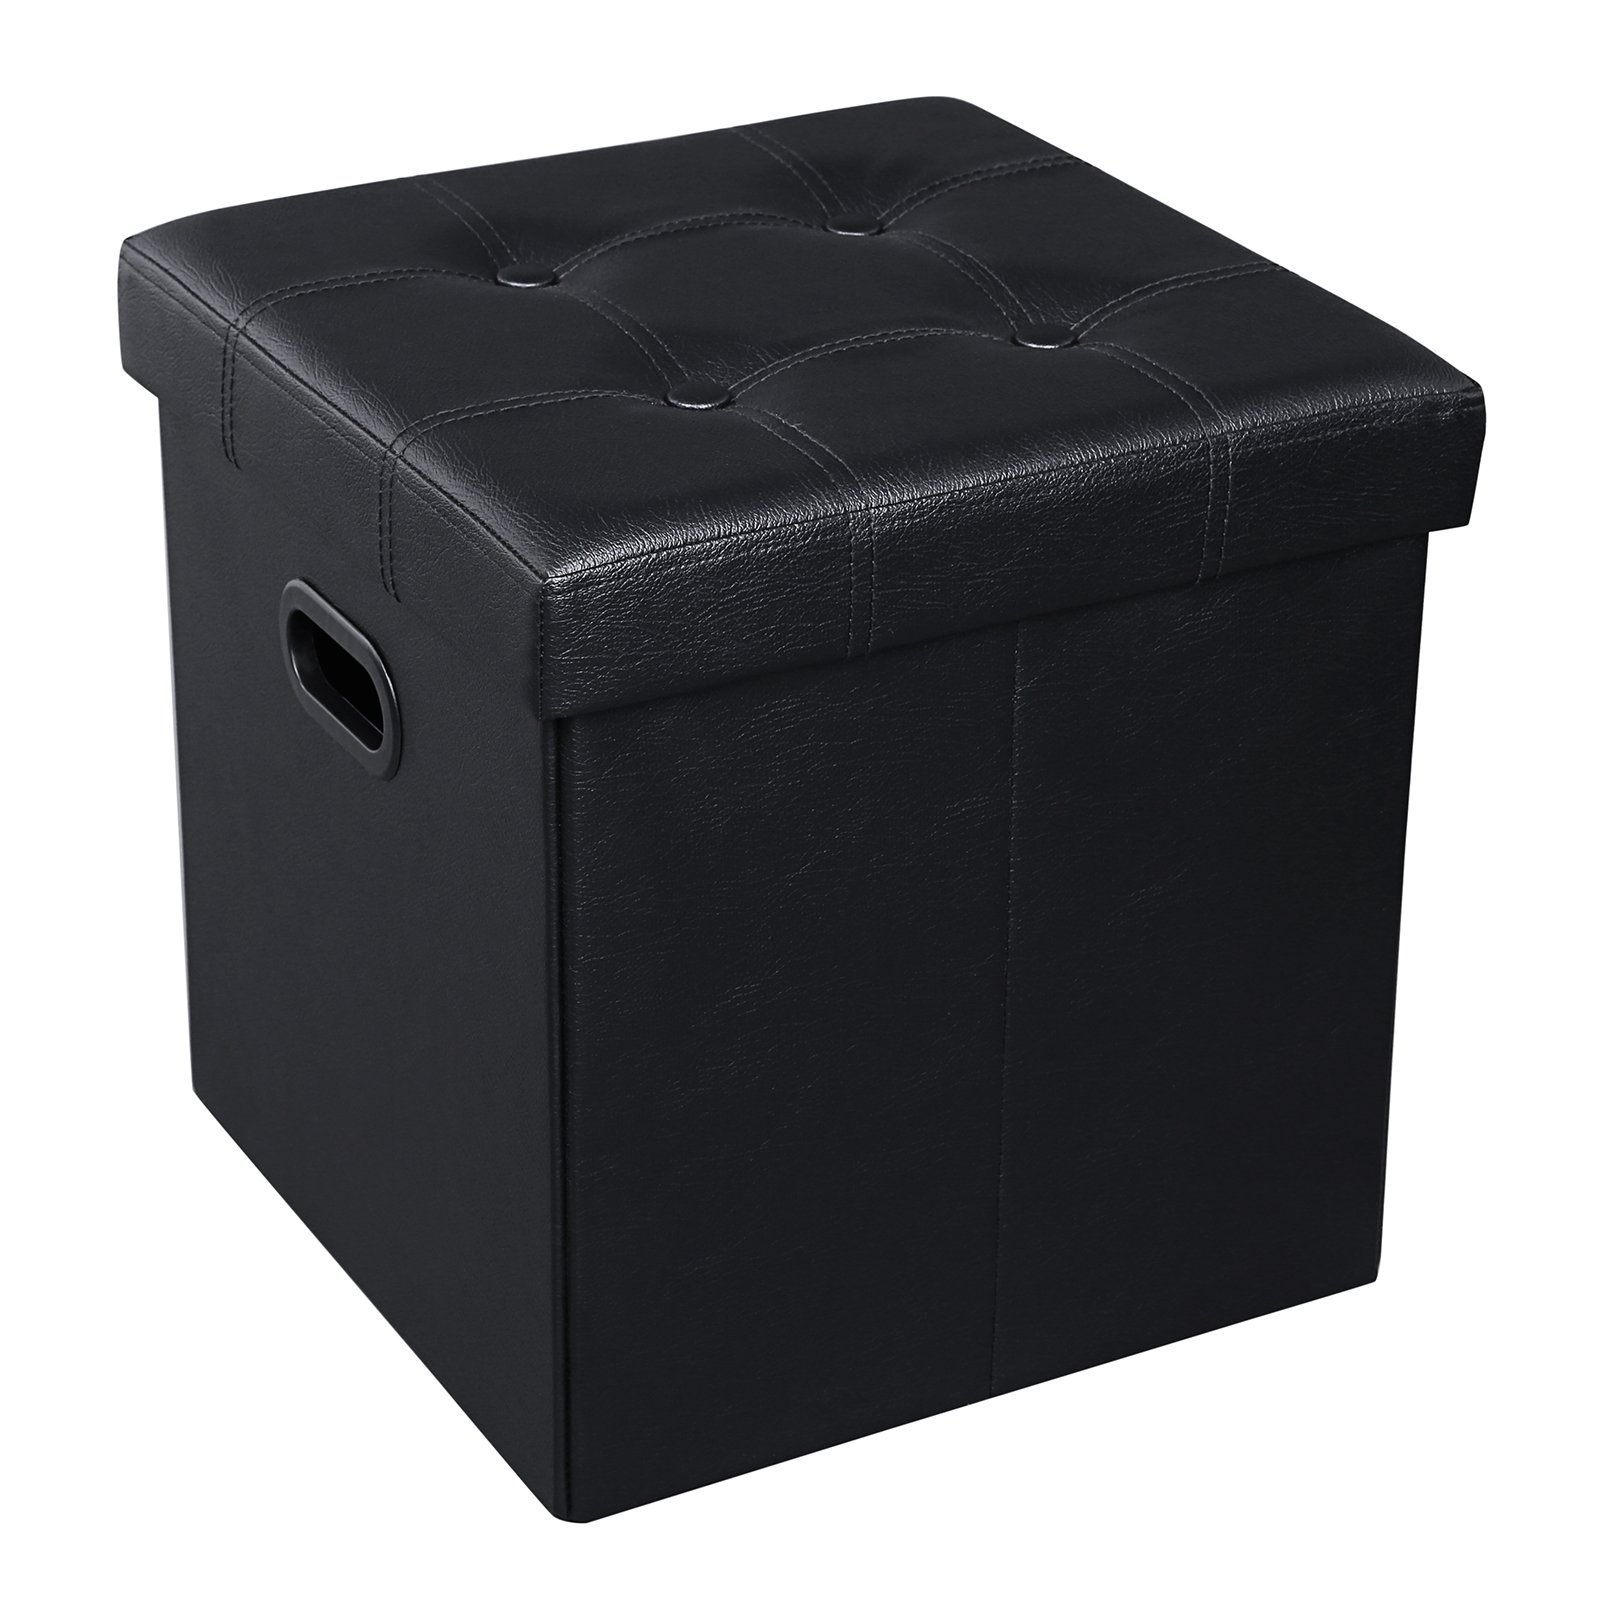 SONGMICS 15'' x 15'' x 15'' Storage Ottoman Cube/Footrest Stool/Puppy Step/Coffee Table with Hole Handle, Holds Up to 660lbs,Faux Leather,Black ULSF30B